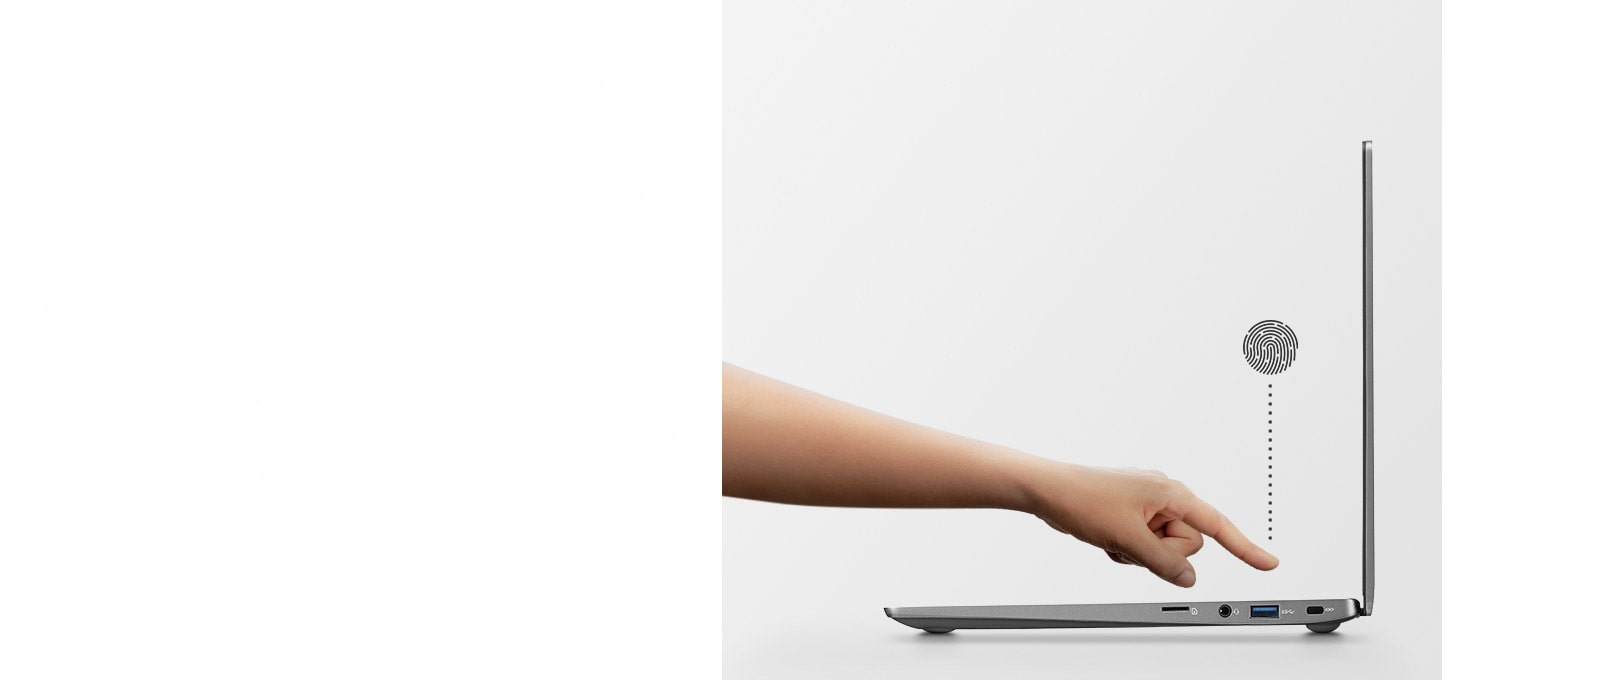 Image of a side view of a laptop with a finger pointing towards the fingertip reader